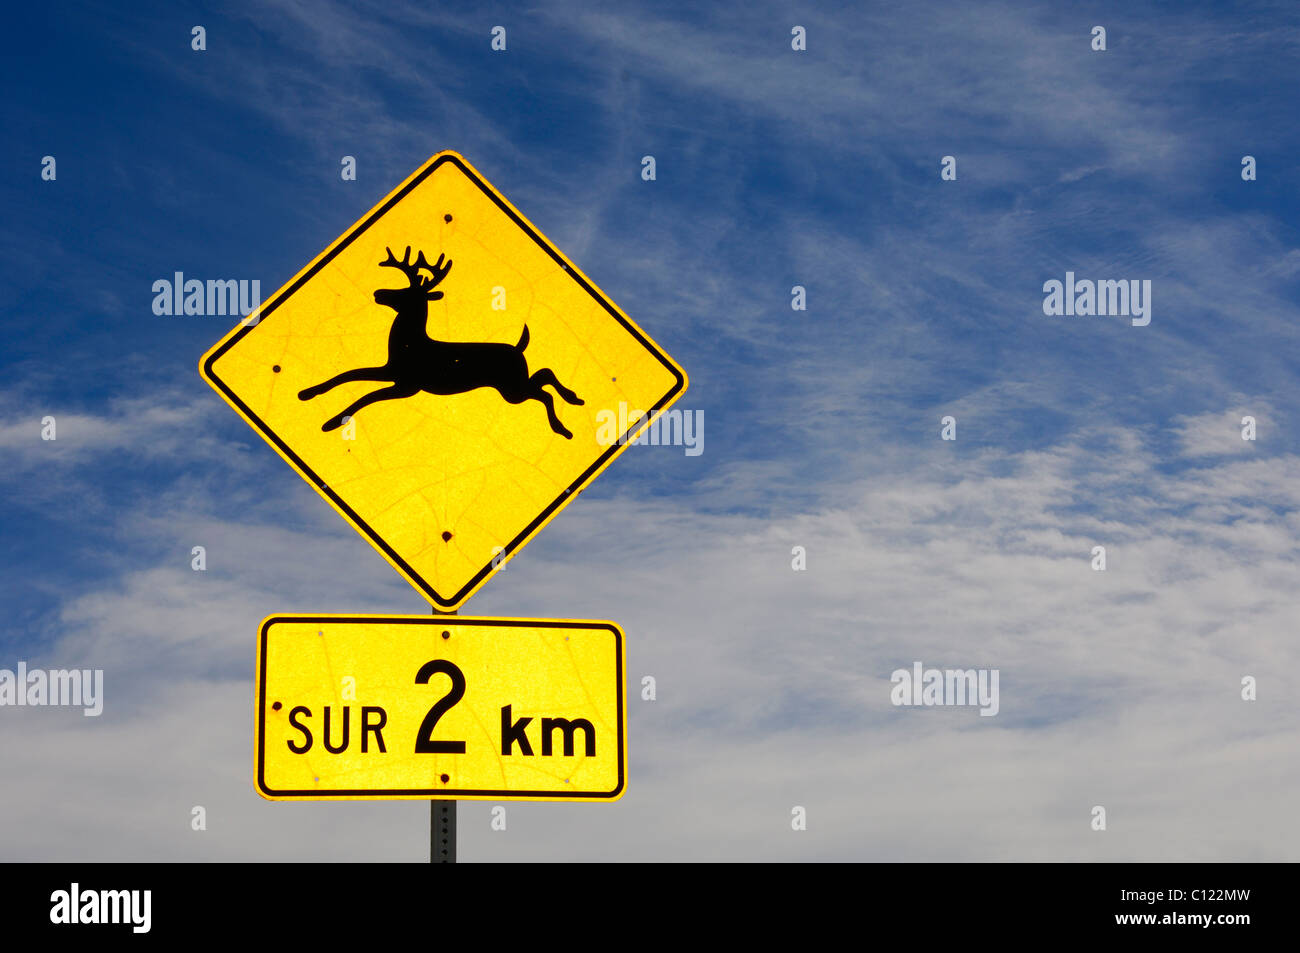 Traffic sign, beware of moose, in French, Quebec, Canada - Stock Image